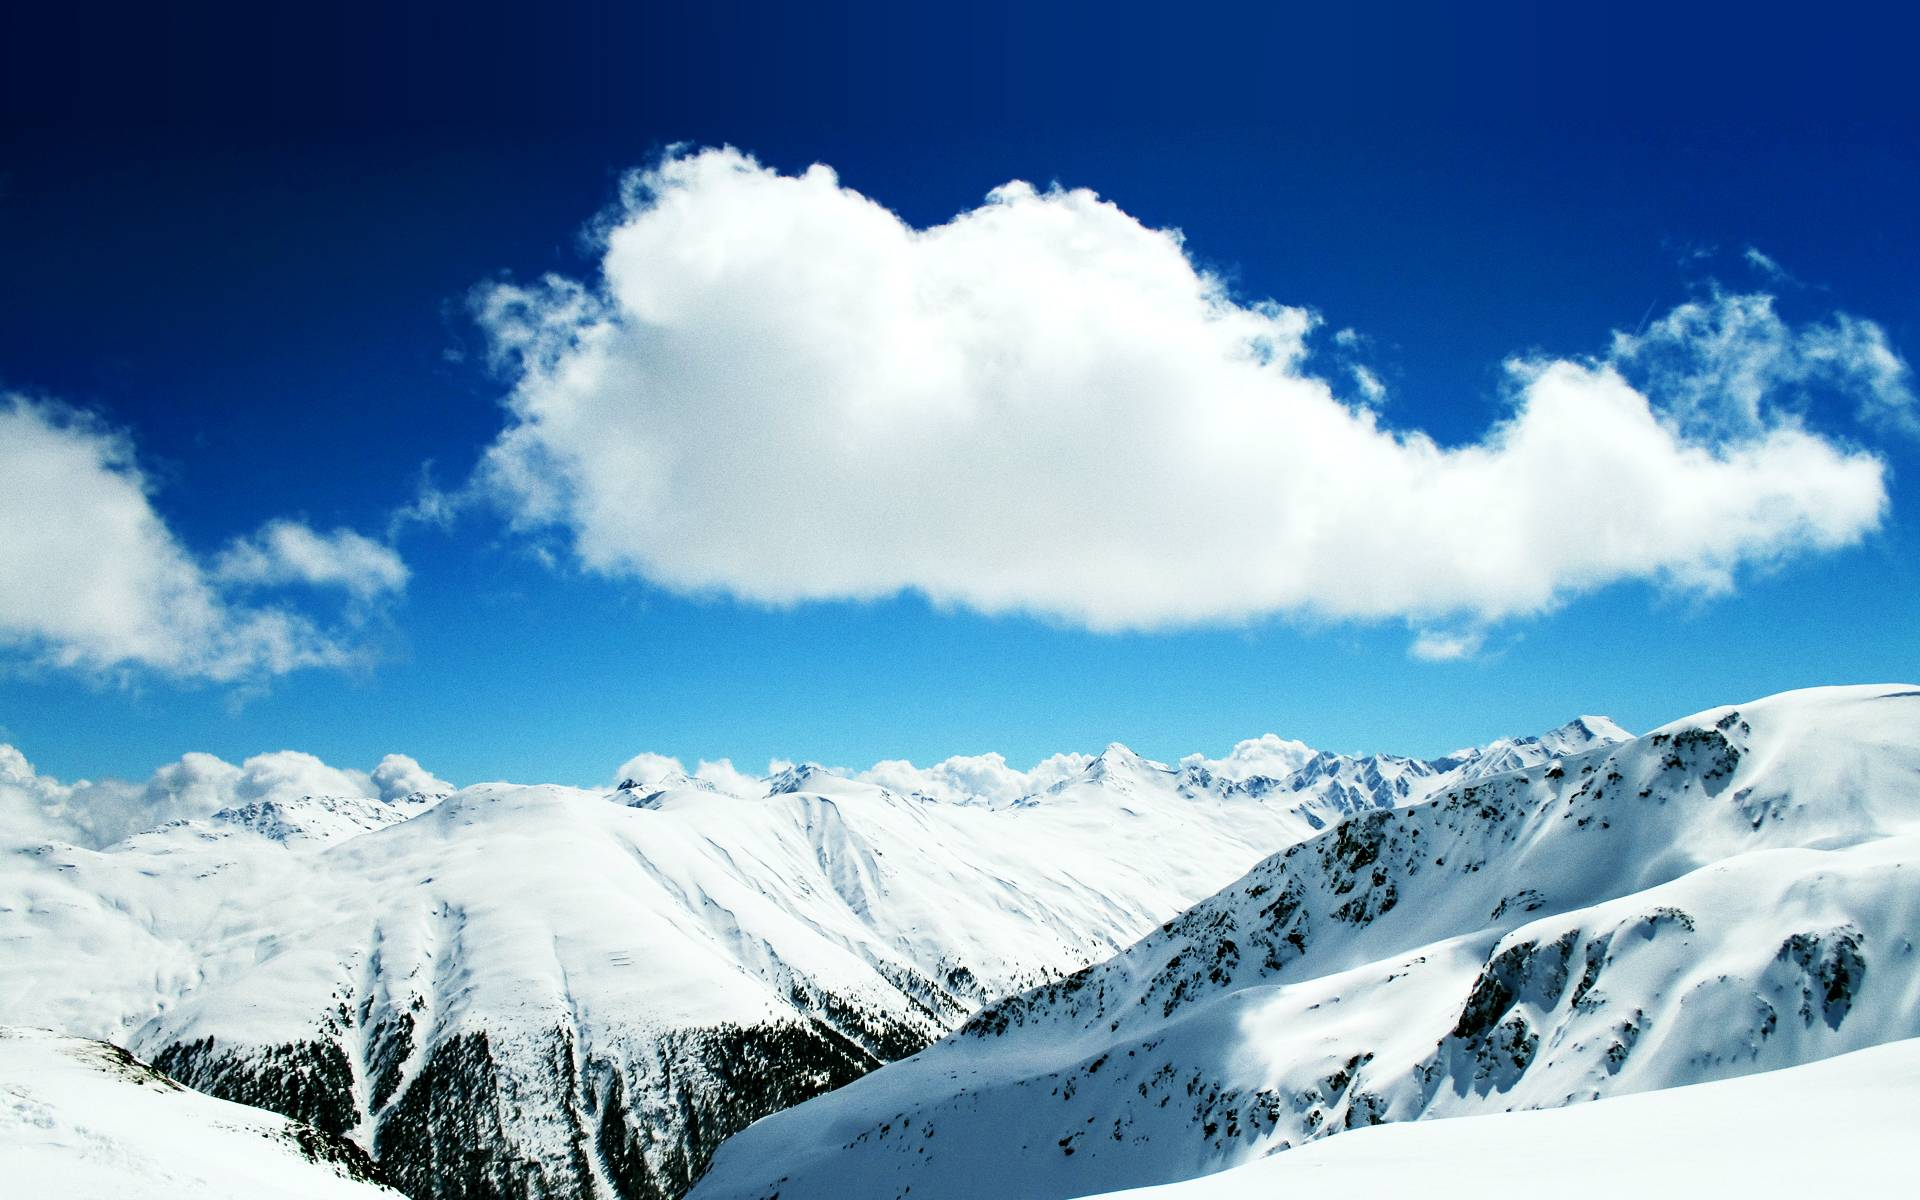 Winter Snow Mountains Wallpapers